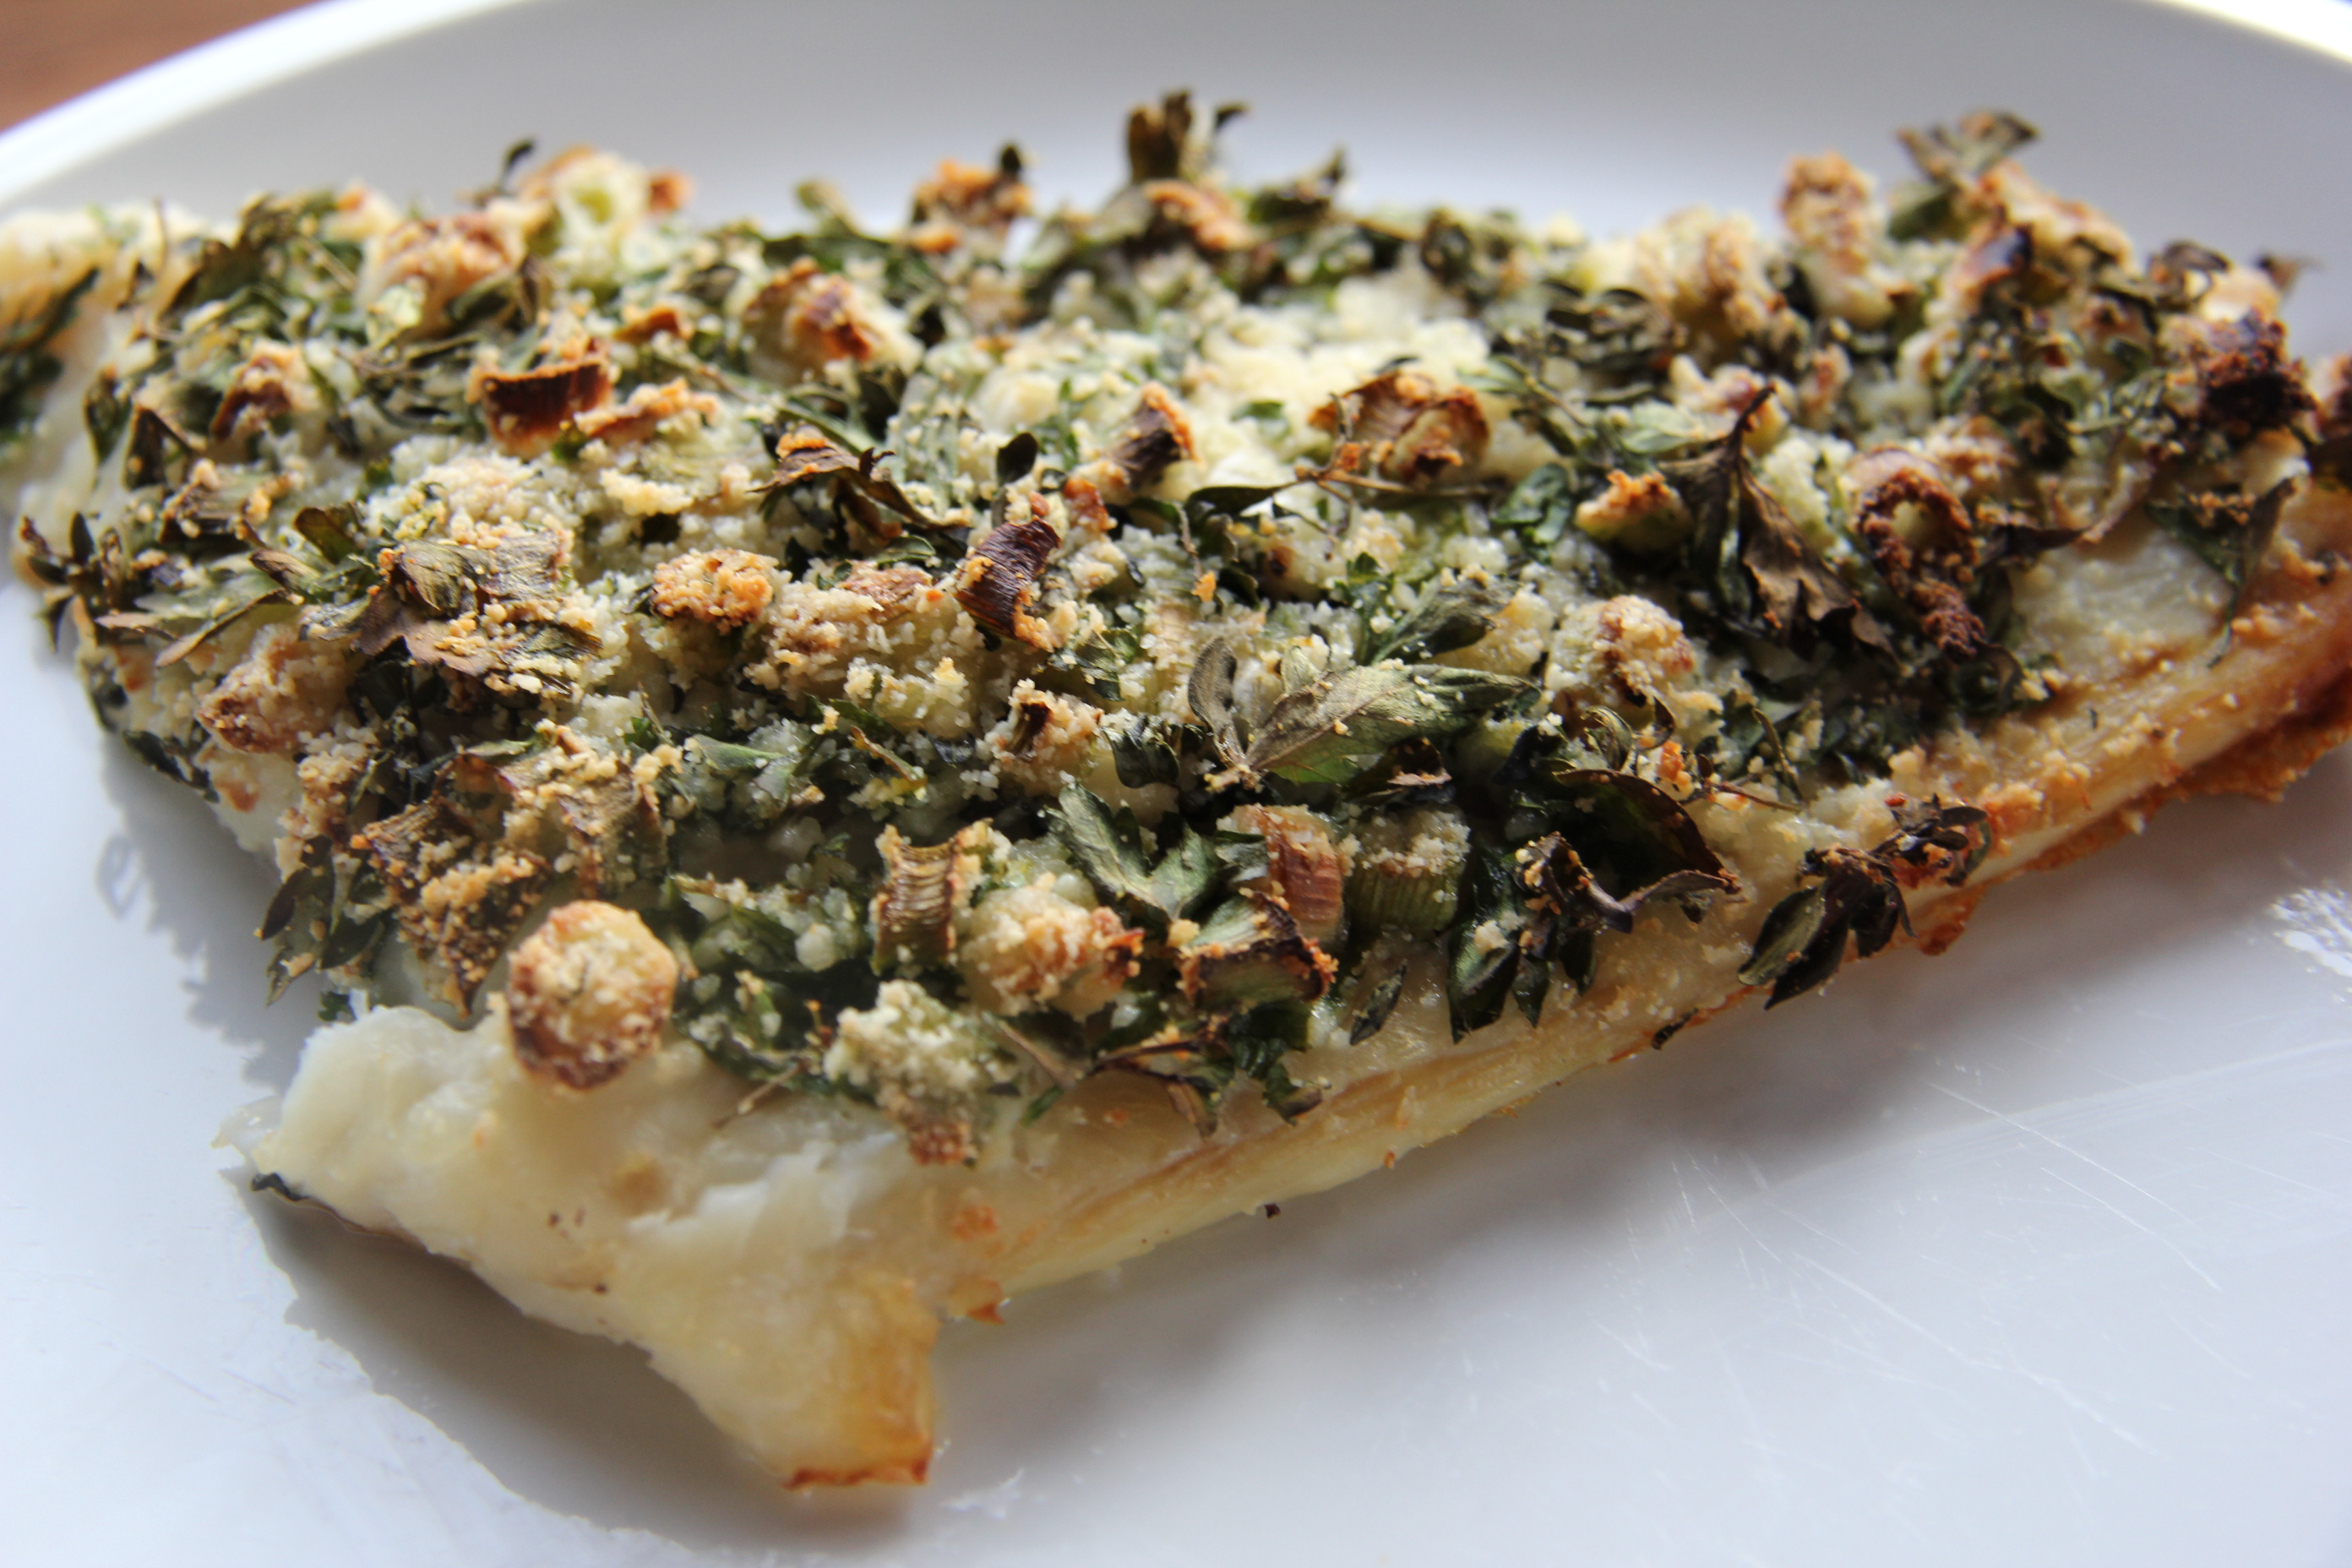 Herb and Almond Crusted Baked Fish | Divalicious Recipes In The City